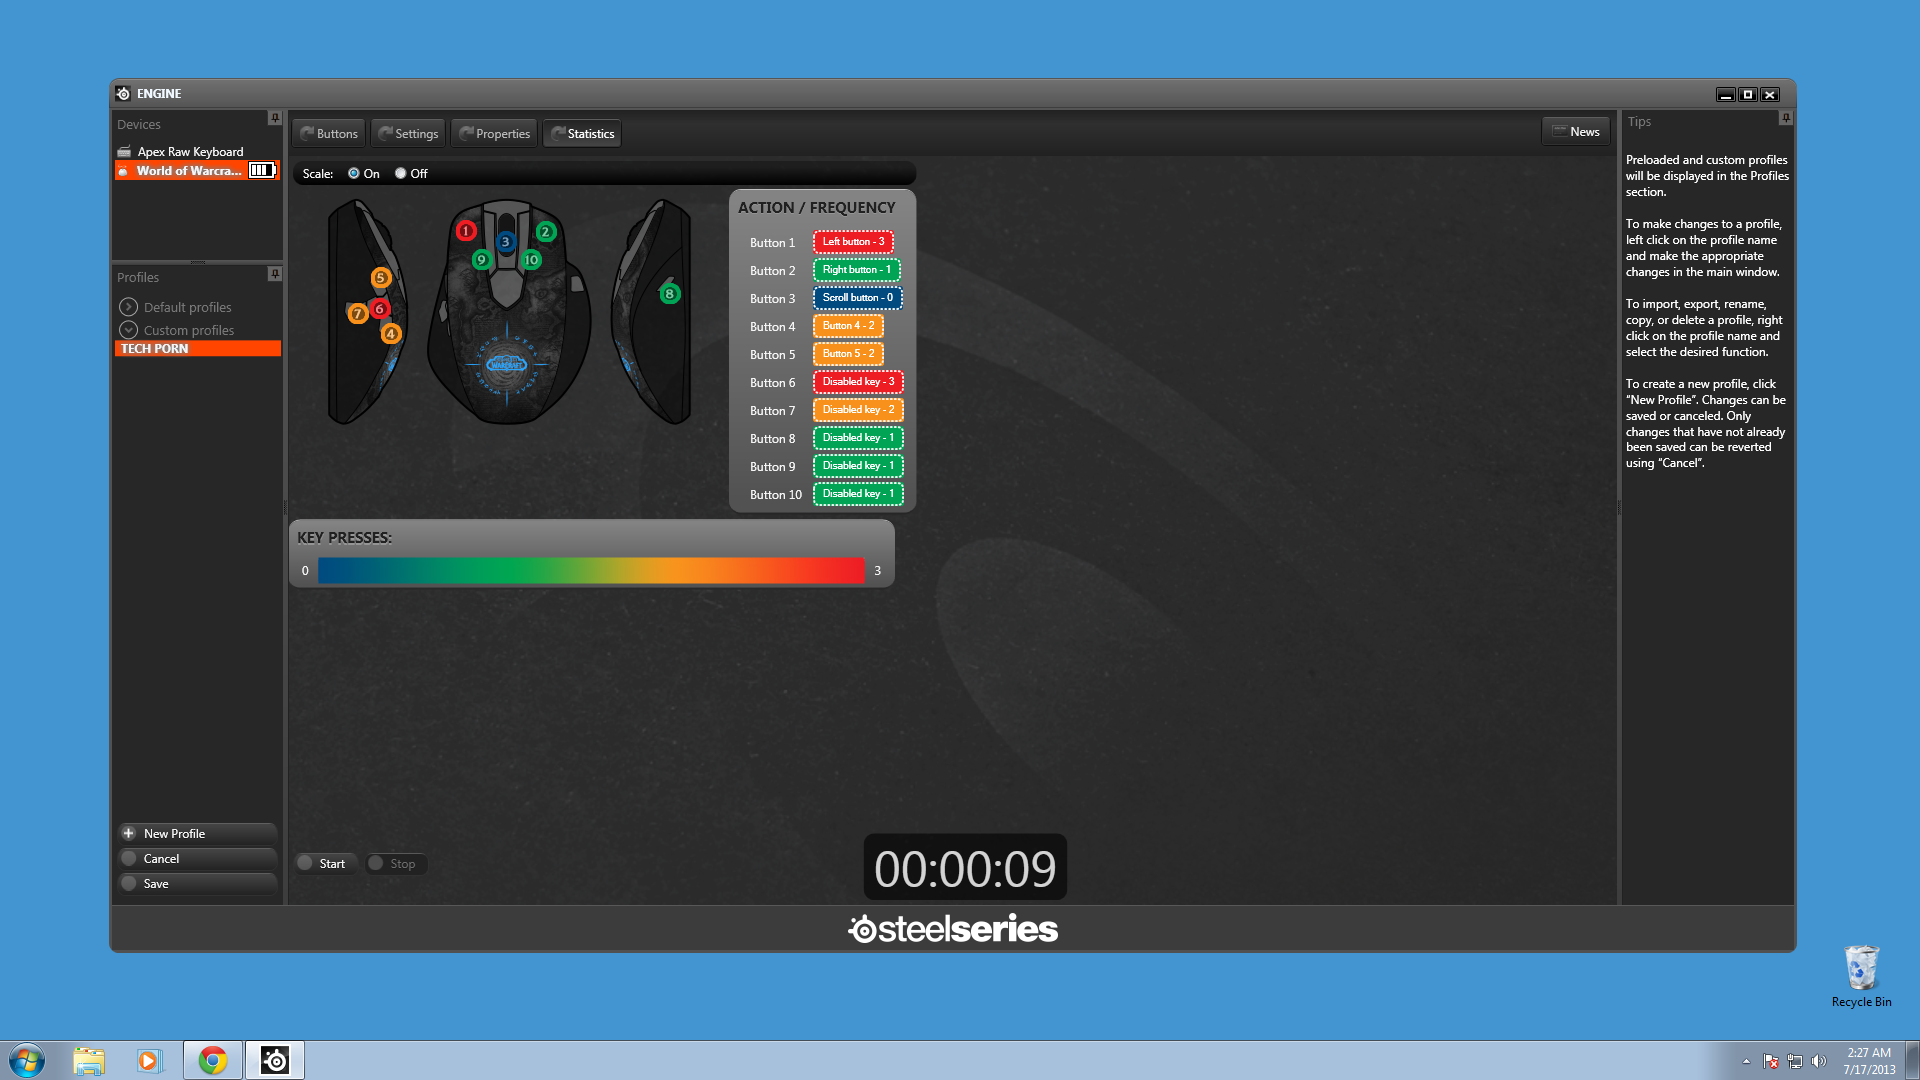 SteelSeries-Wireless-MMO-Gaming-Mouse-4